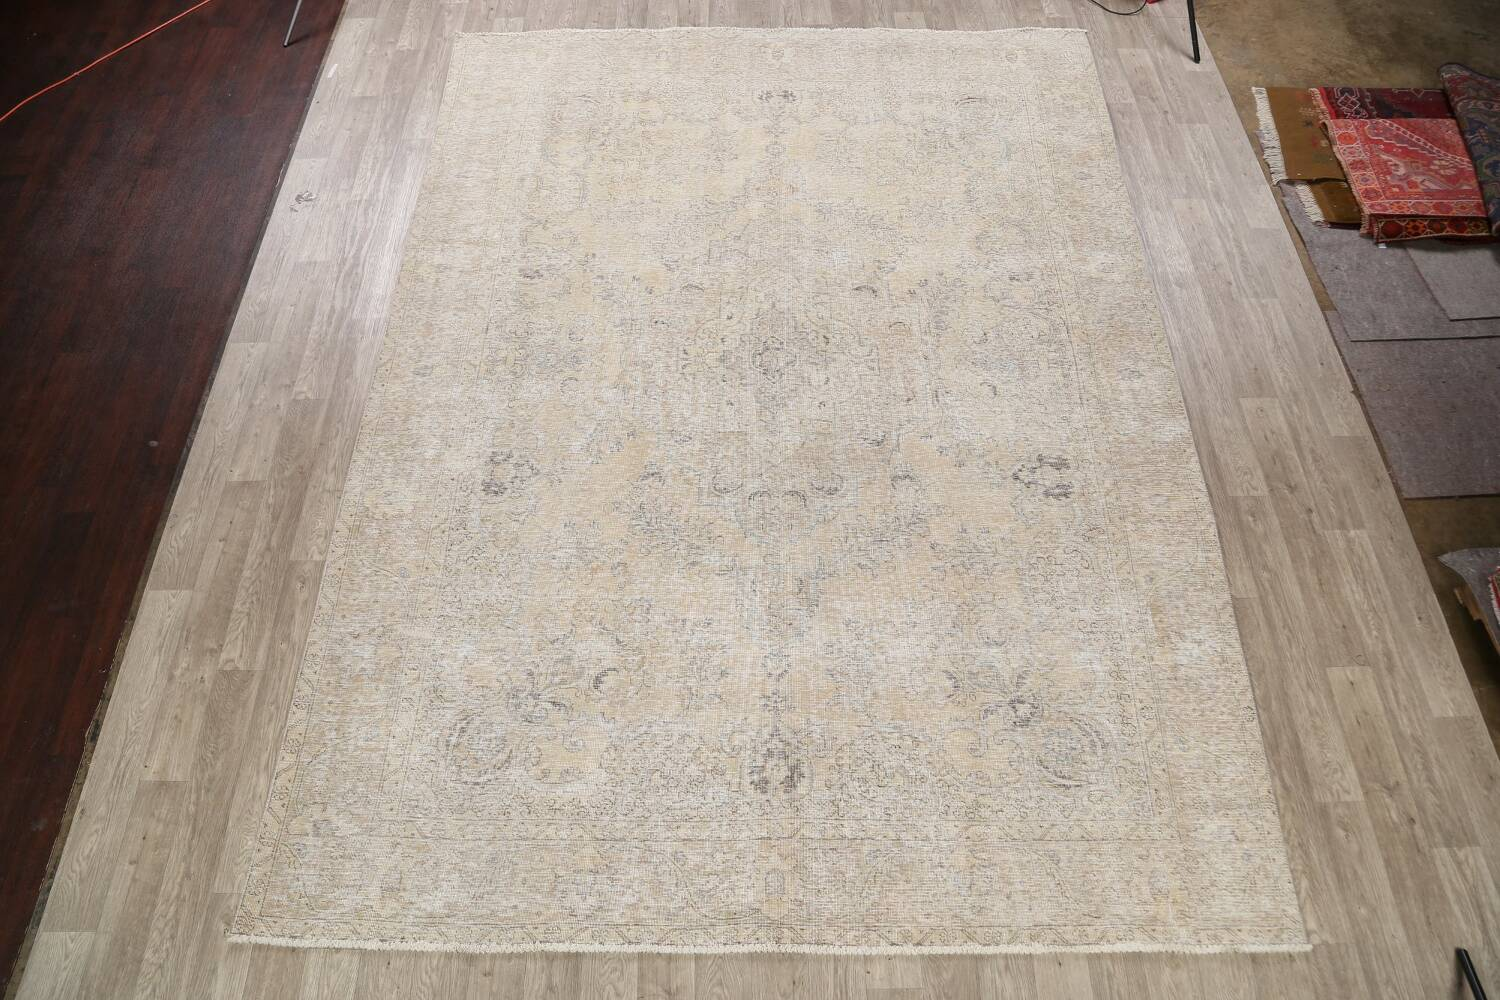 Antique Muted Floral Tabriz Persian Area Rug 9x13 image 2